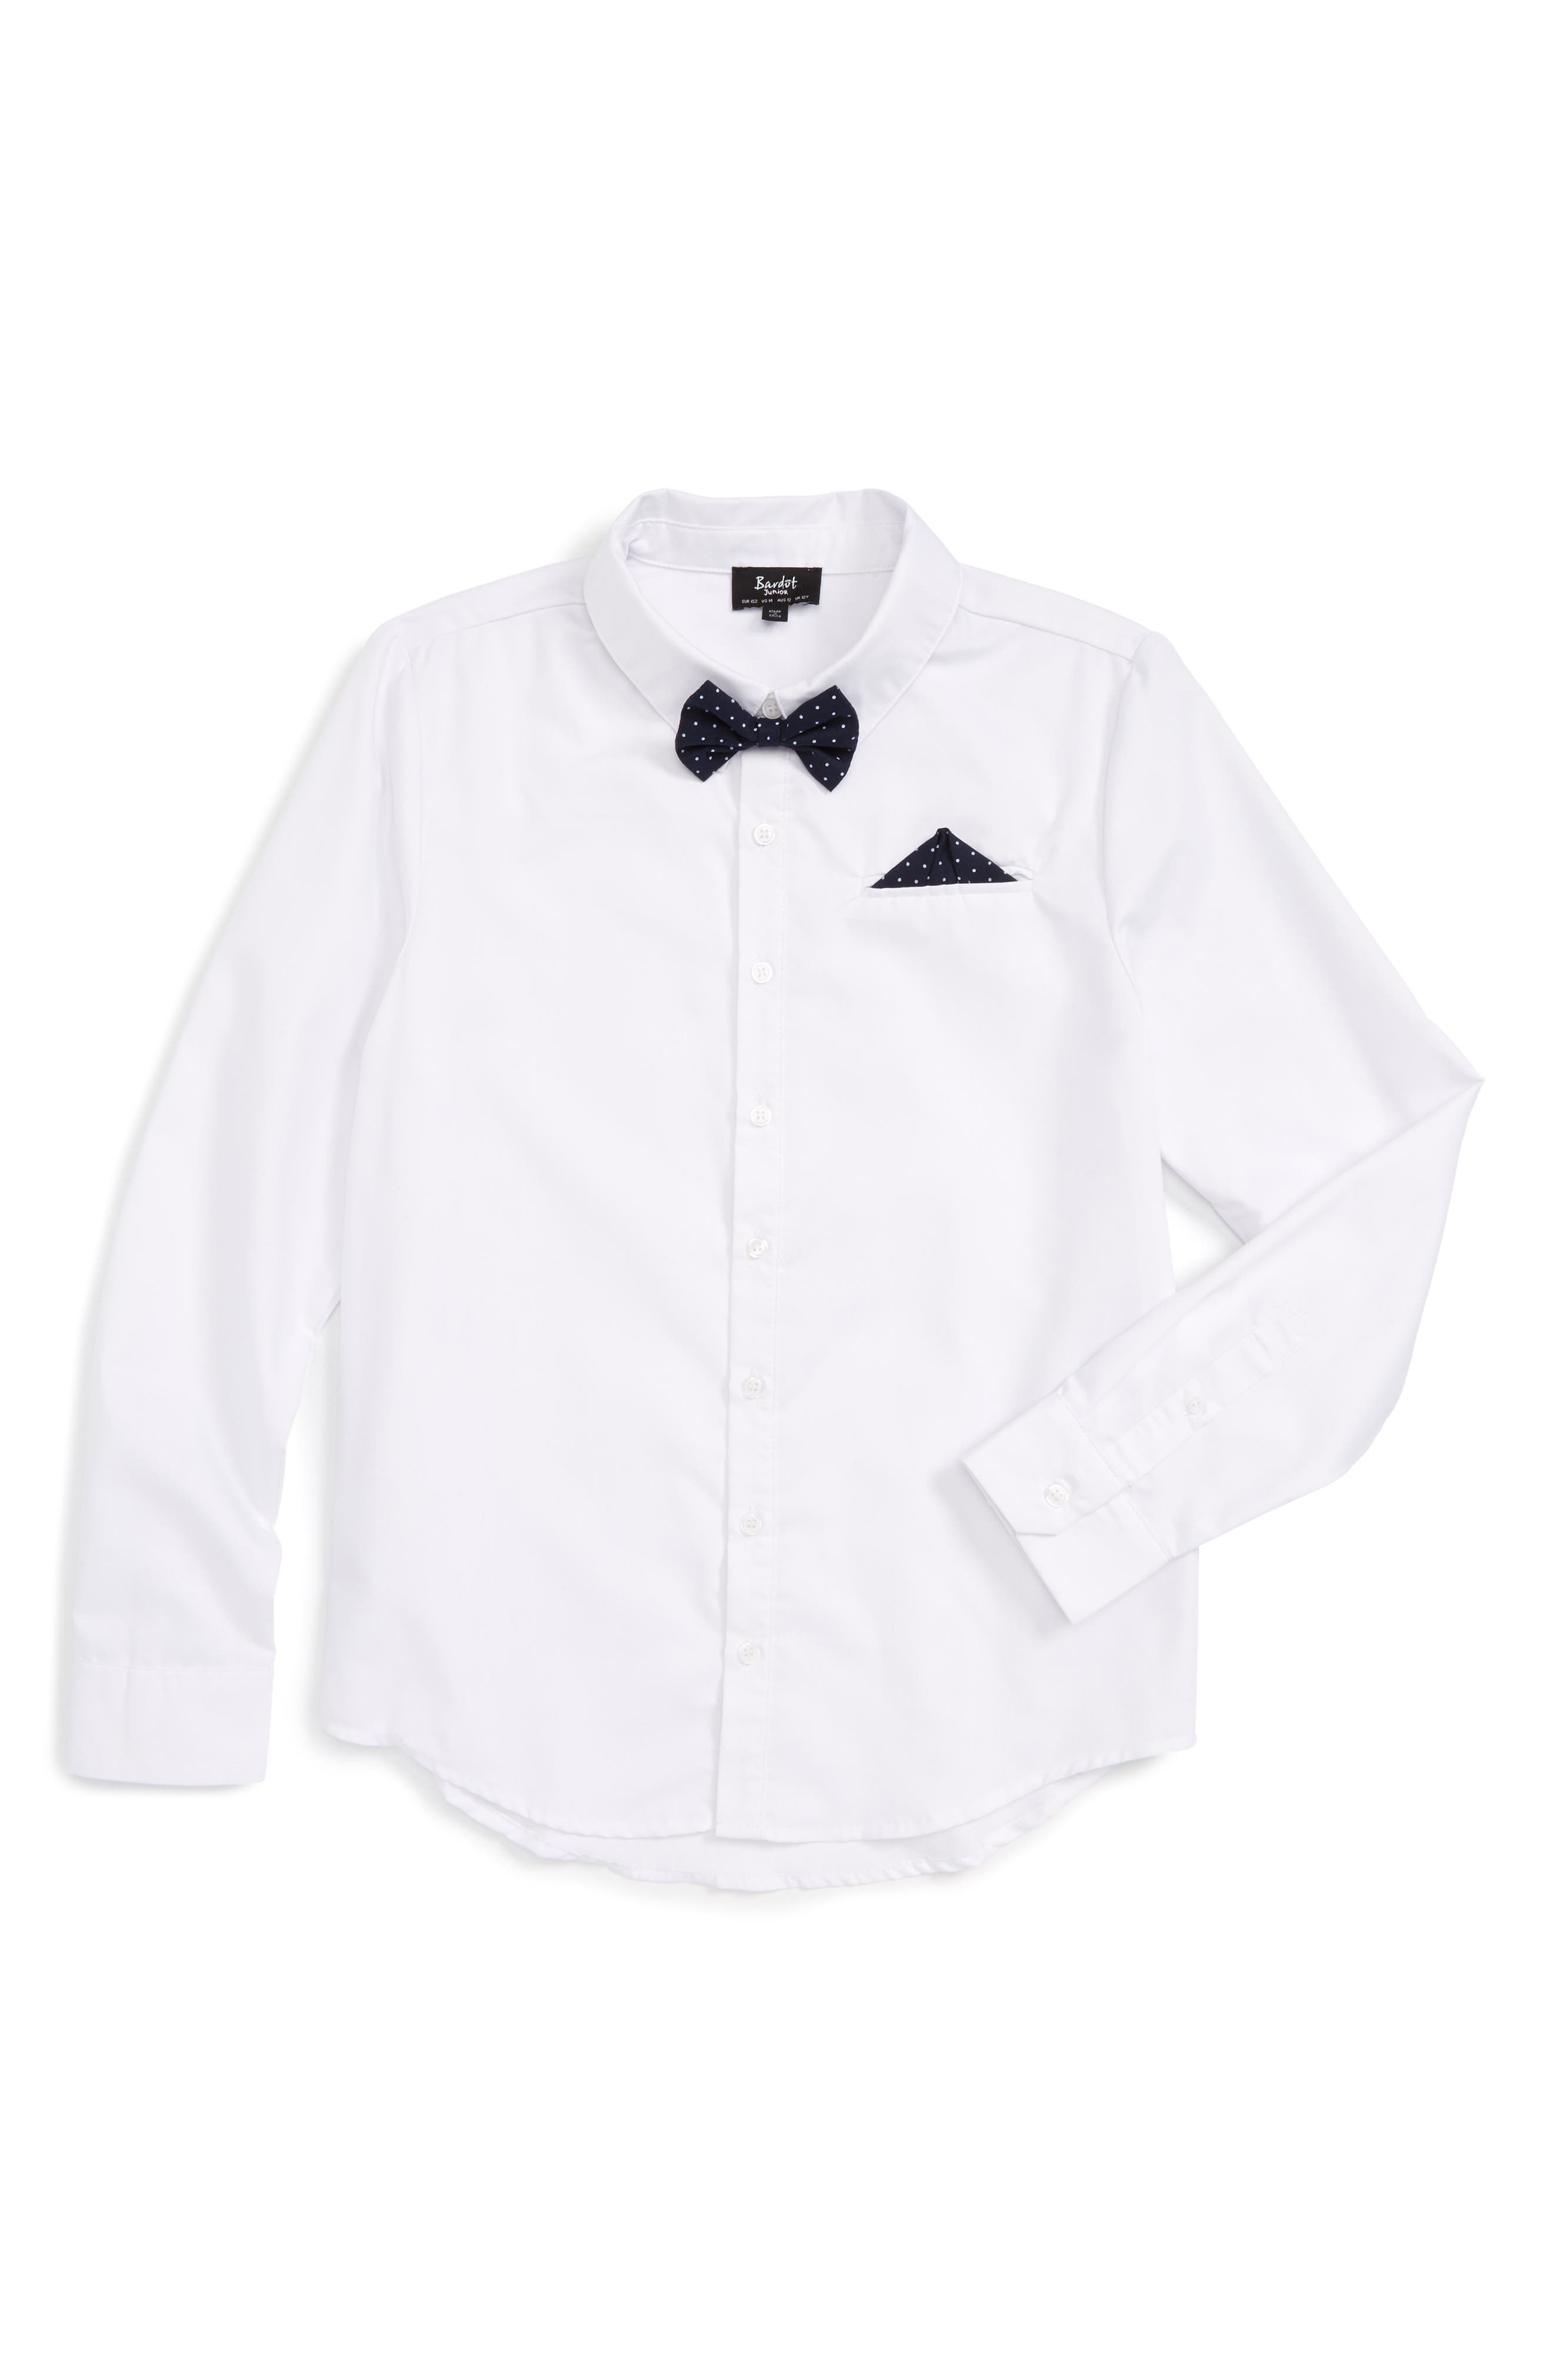 Bardot Junior Dapper Shirt (Toddler Boys, Little Boys & Big Boys)